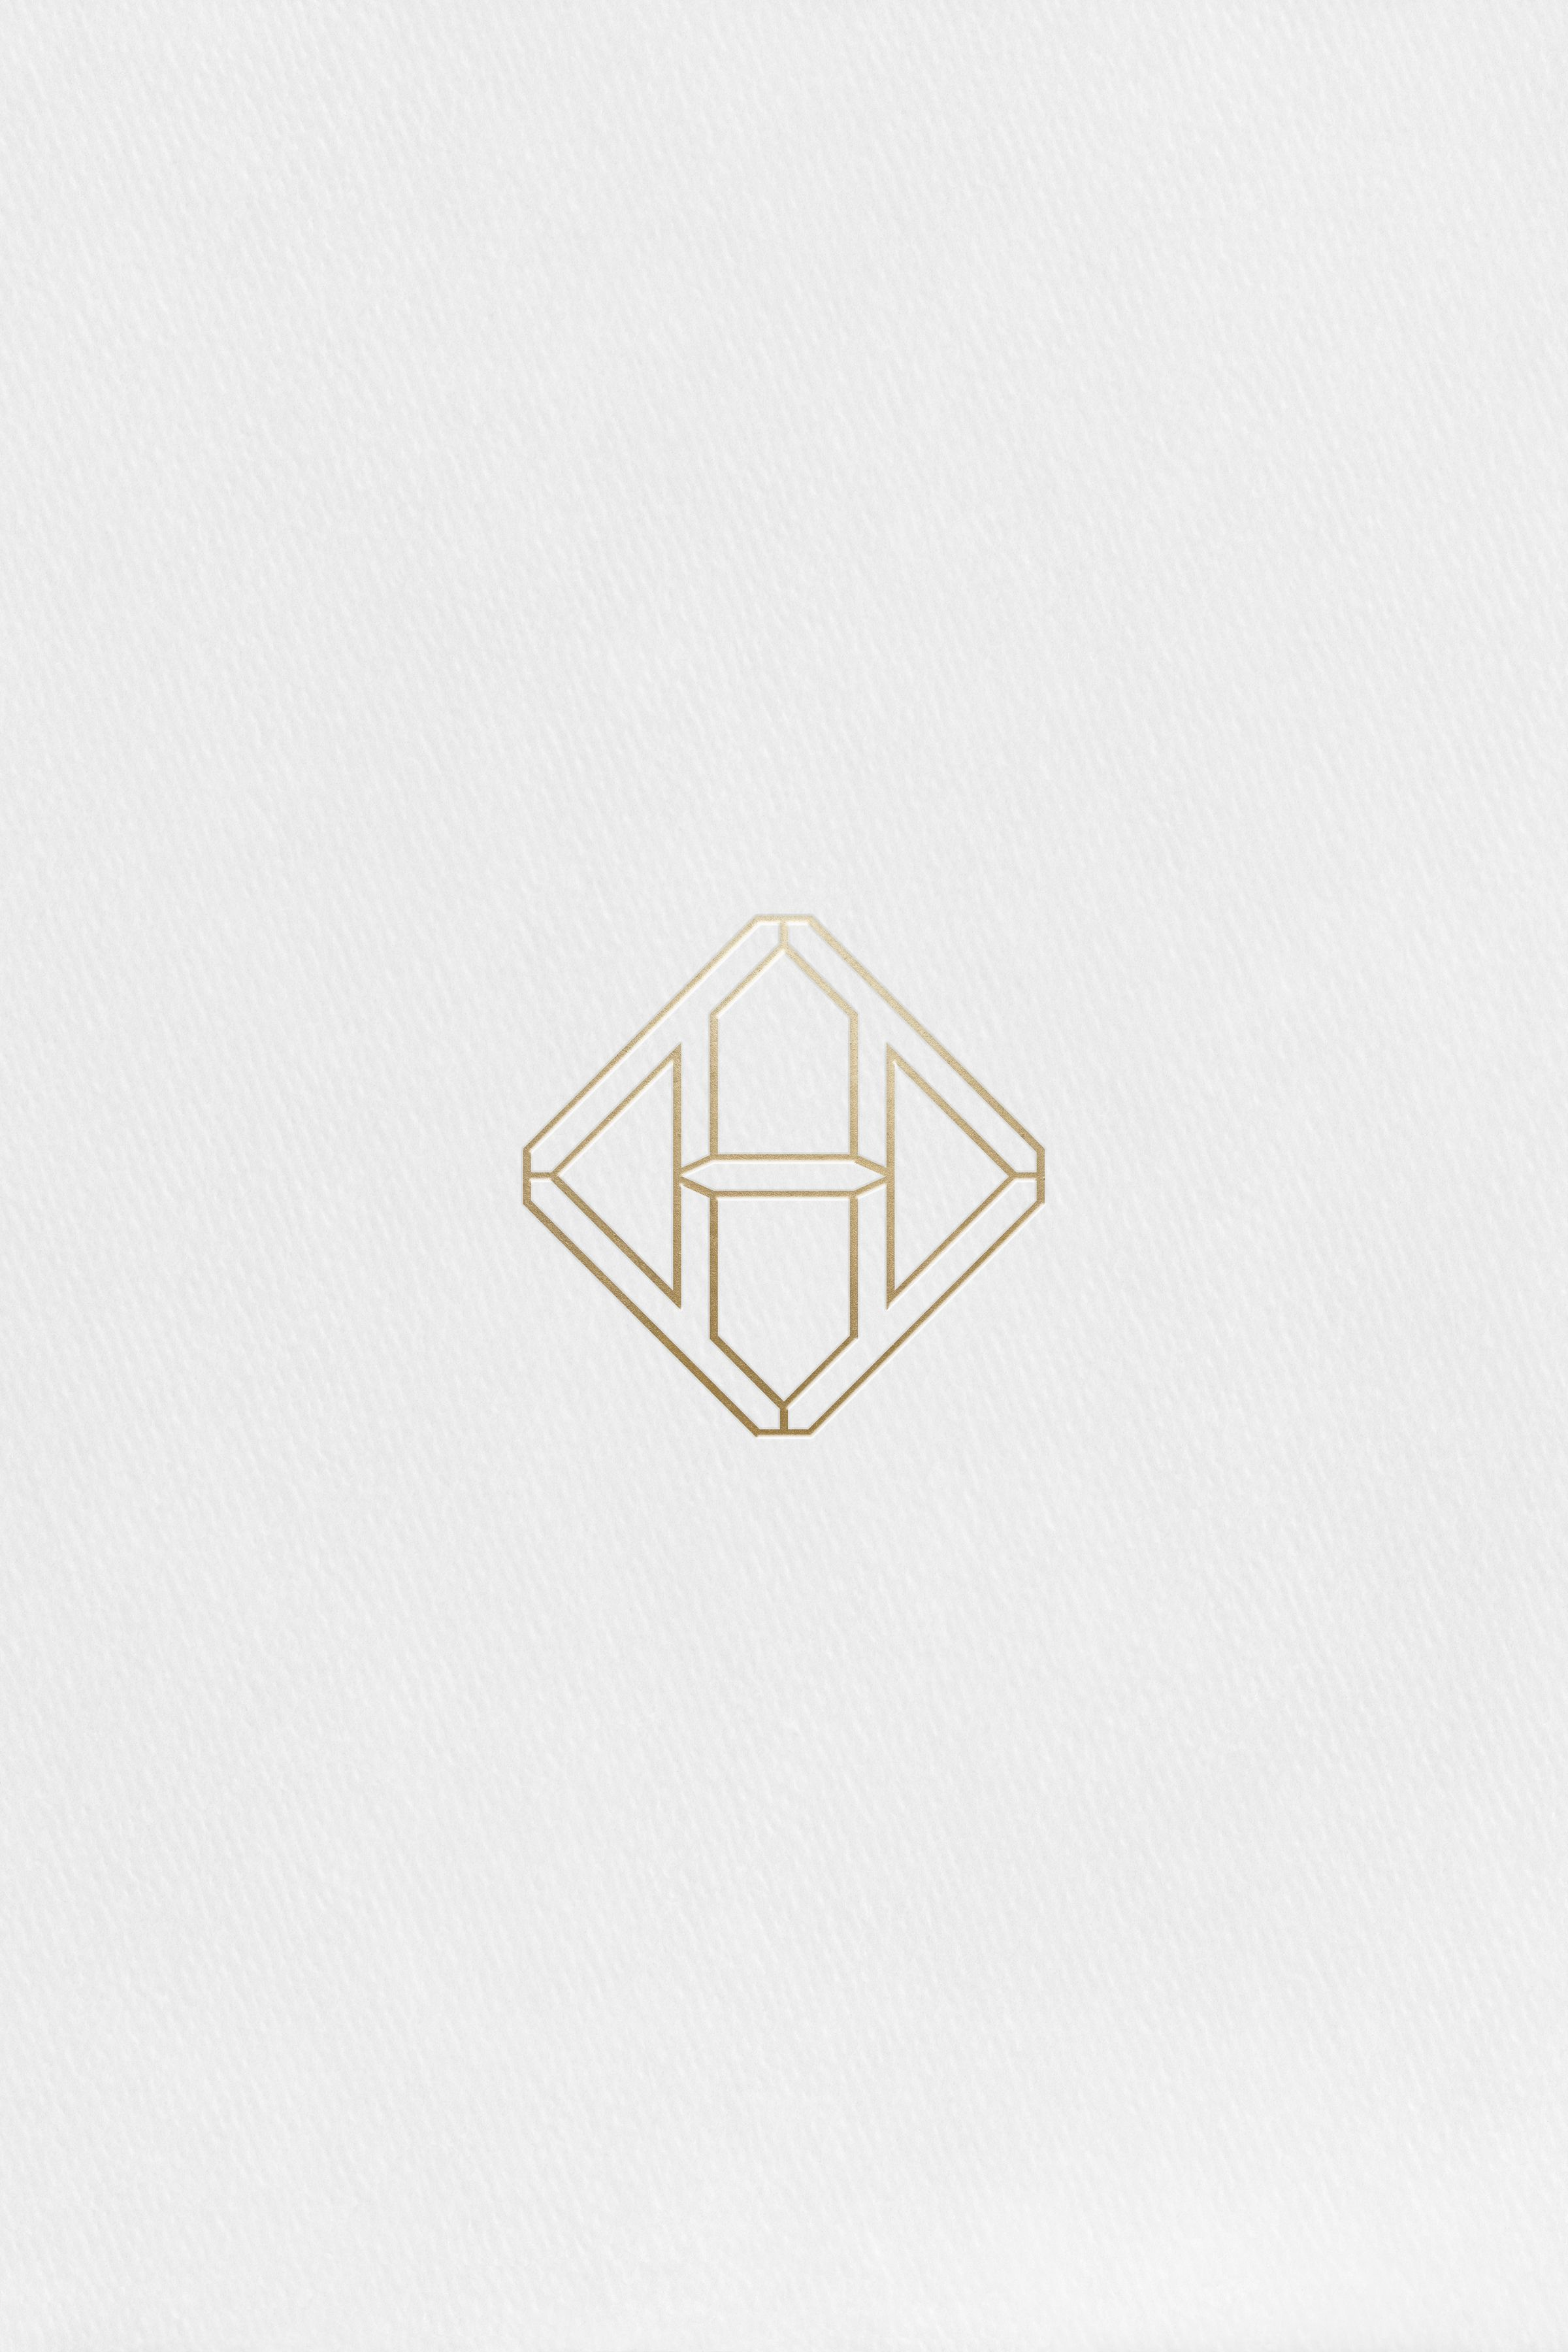 Hennessy H mark applied in gold foil to paper